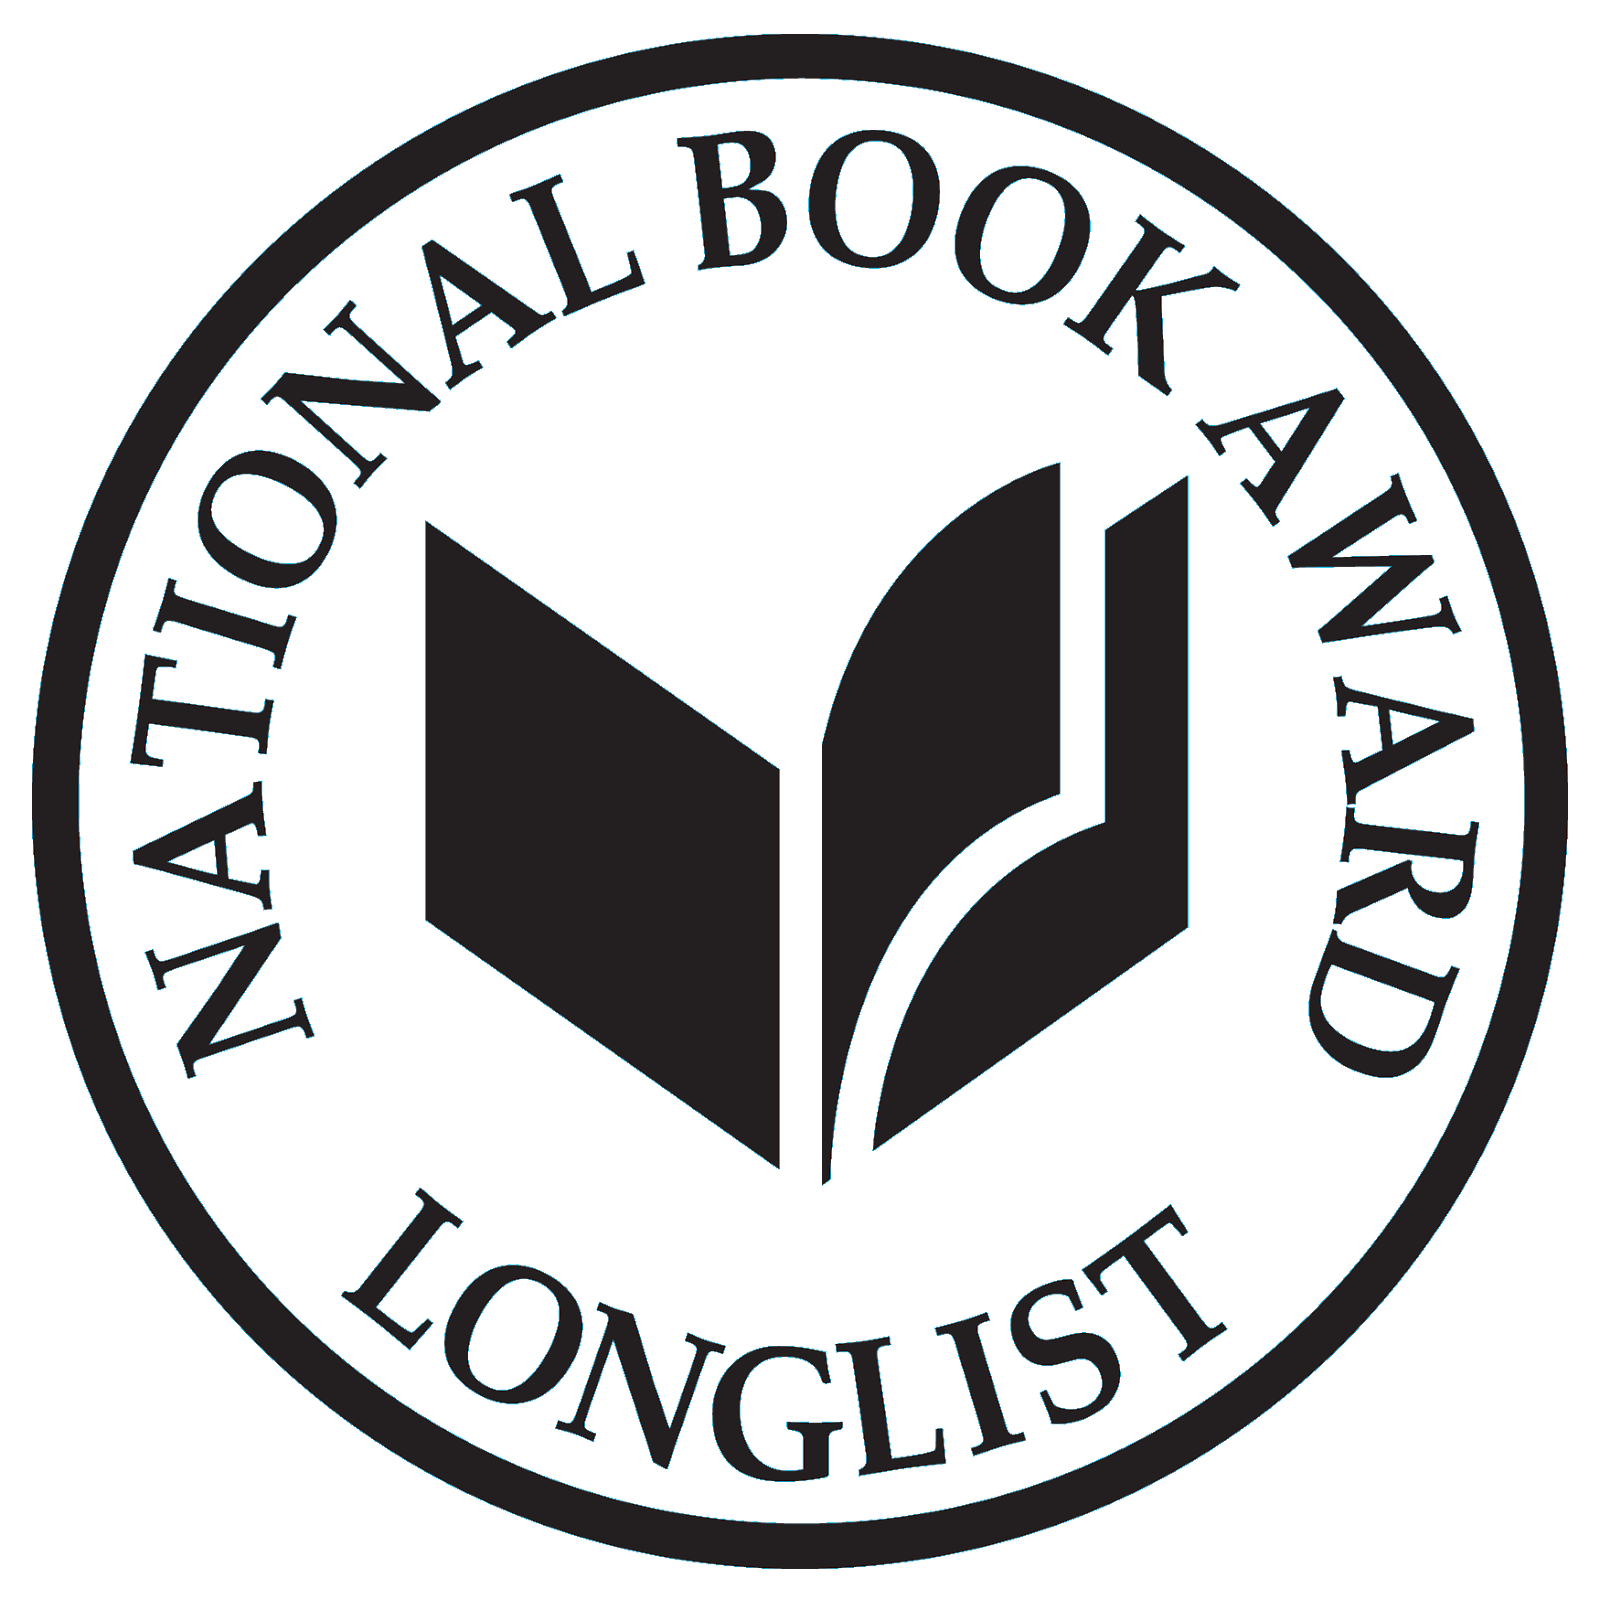 Longlist Medallion Black-and-White.png